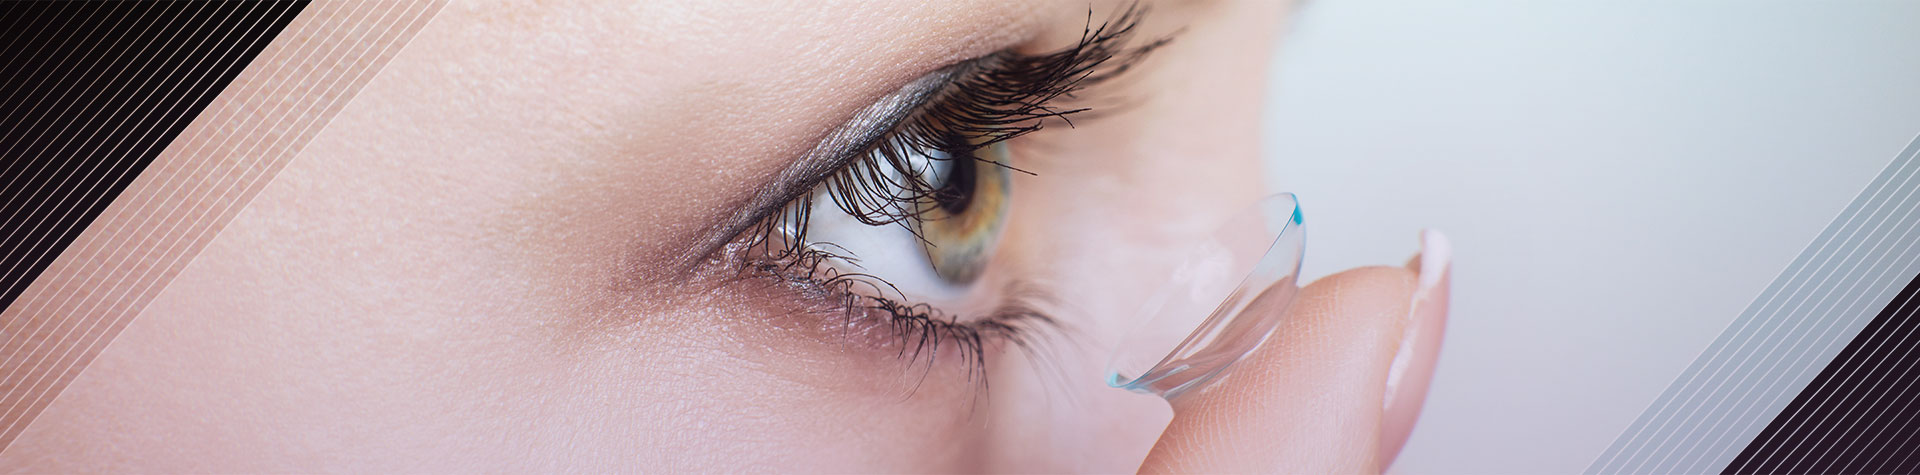 Contact Lens Insertion. Maple Grove Eye Doctors